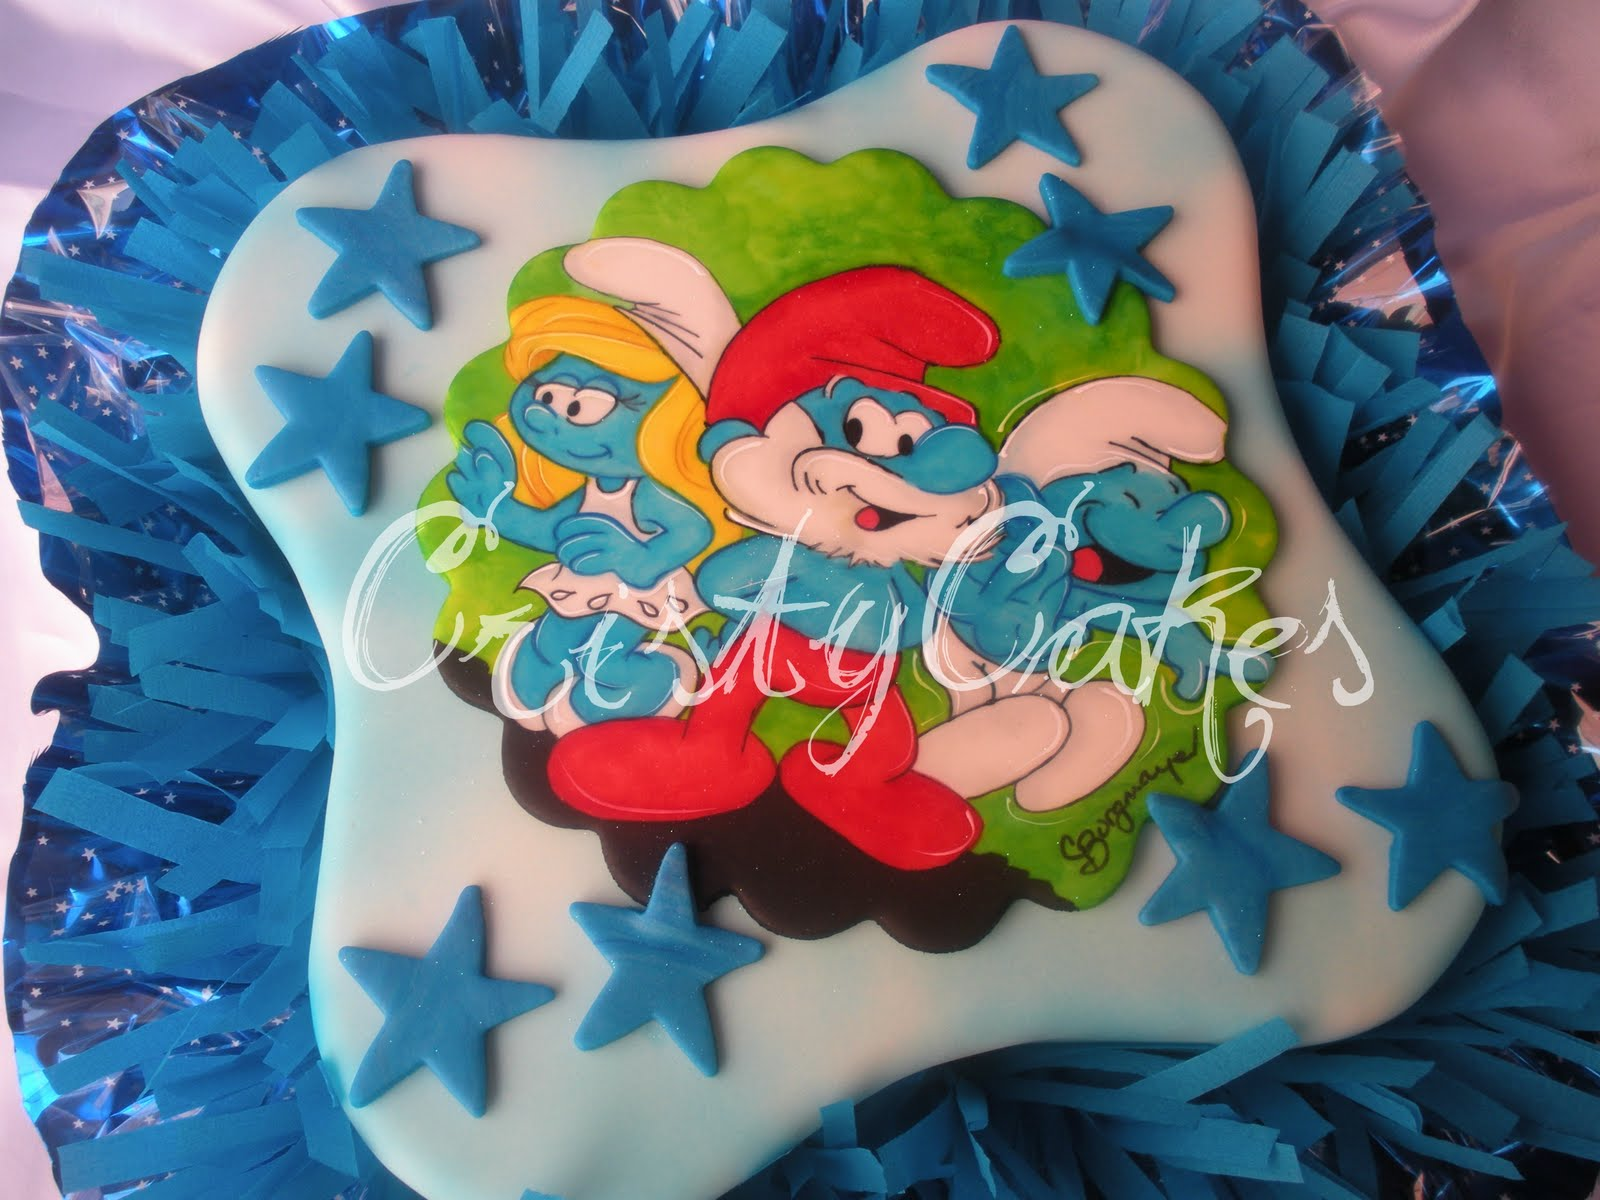 Cristy's Cakes: Los Pitufos